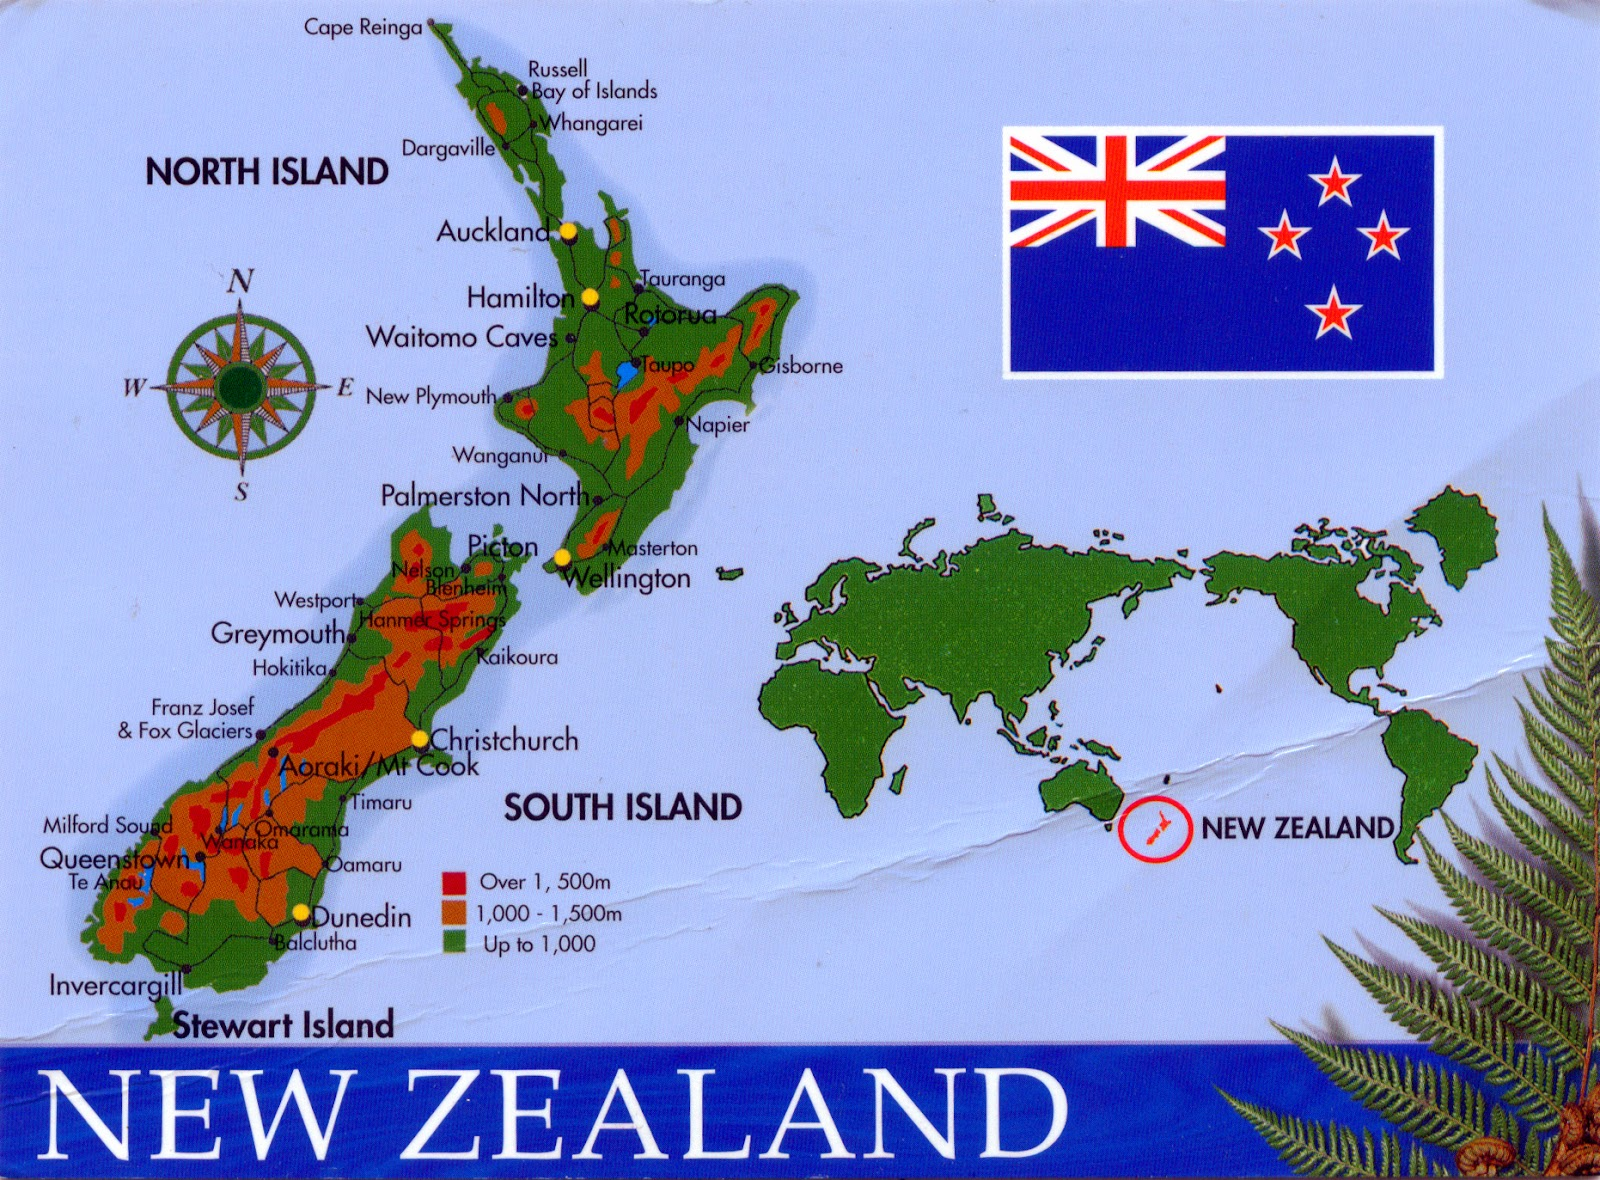 World Come To My Home 0975 New Zealand The Map And The Flag Of